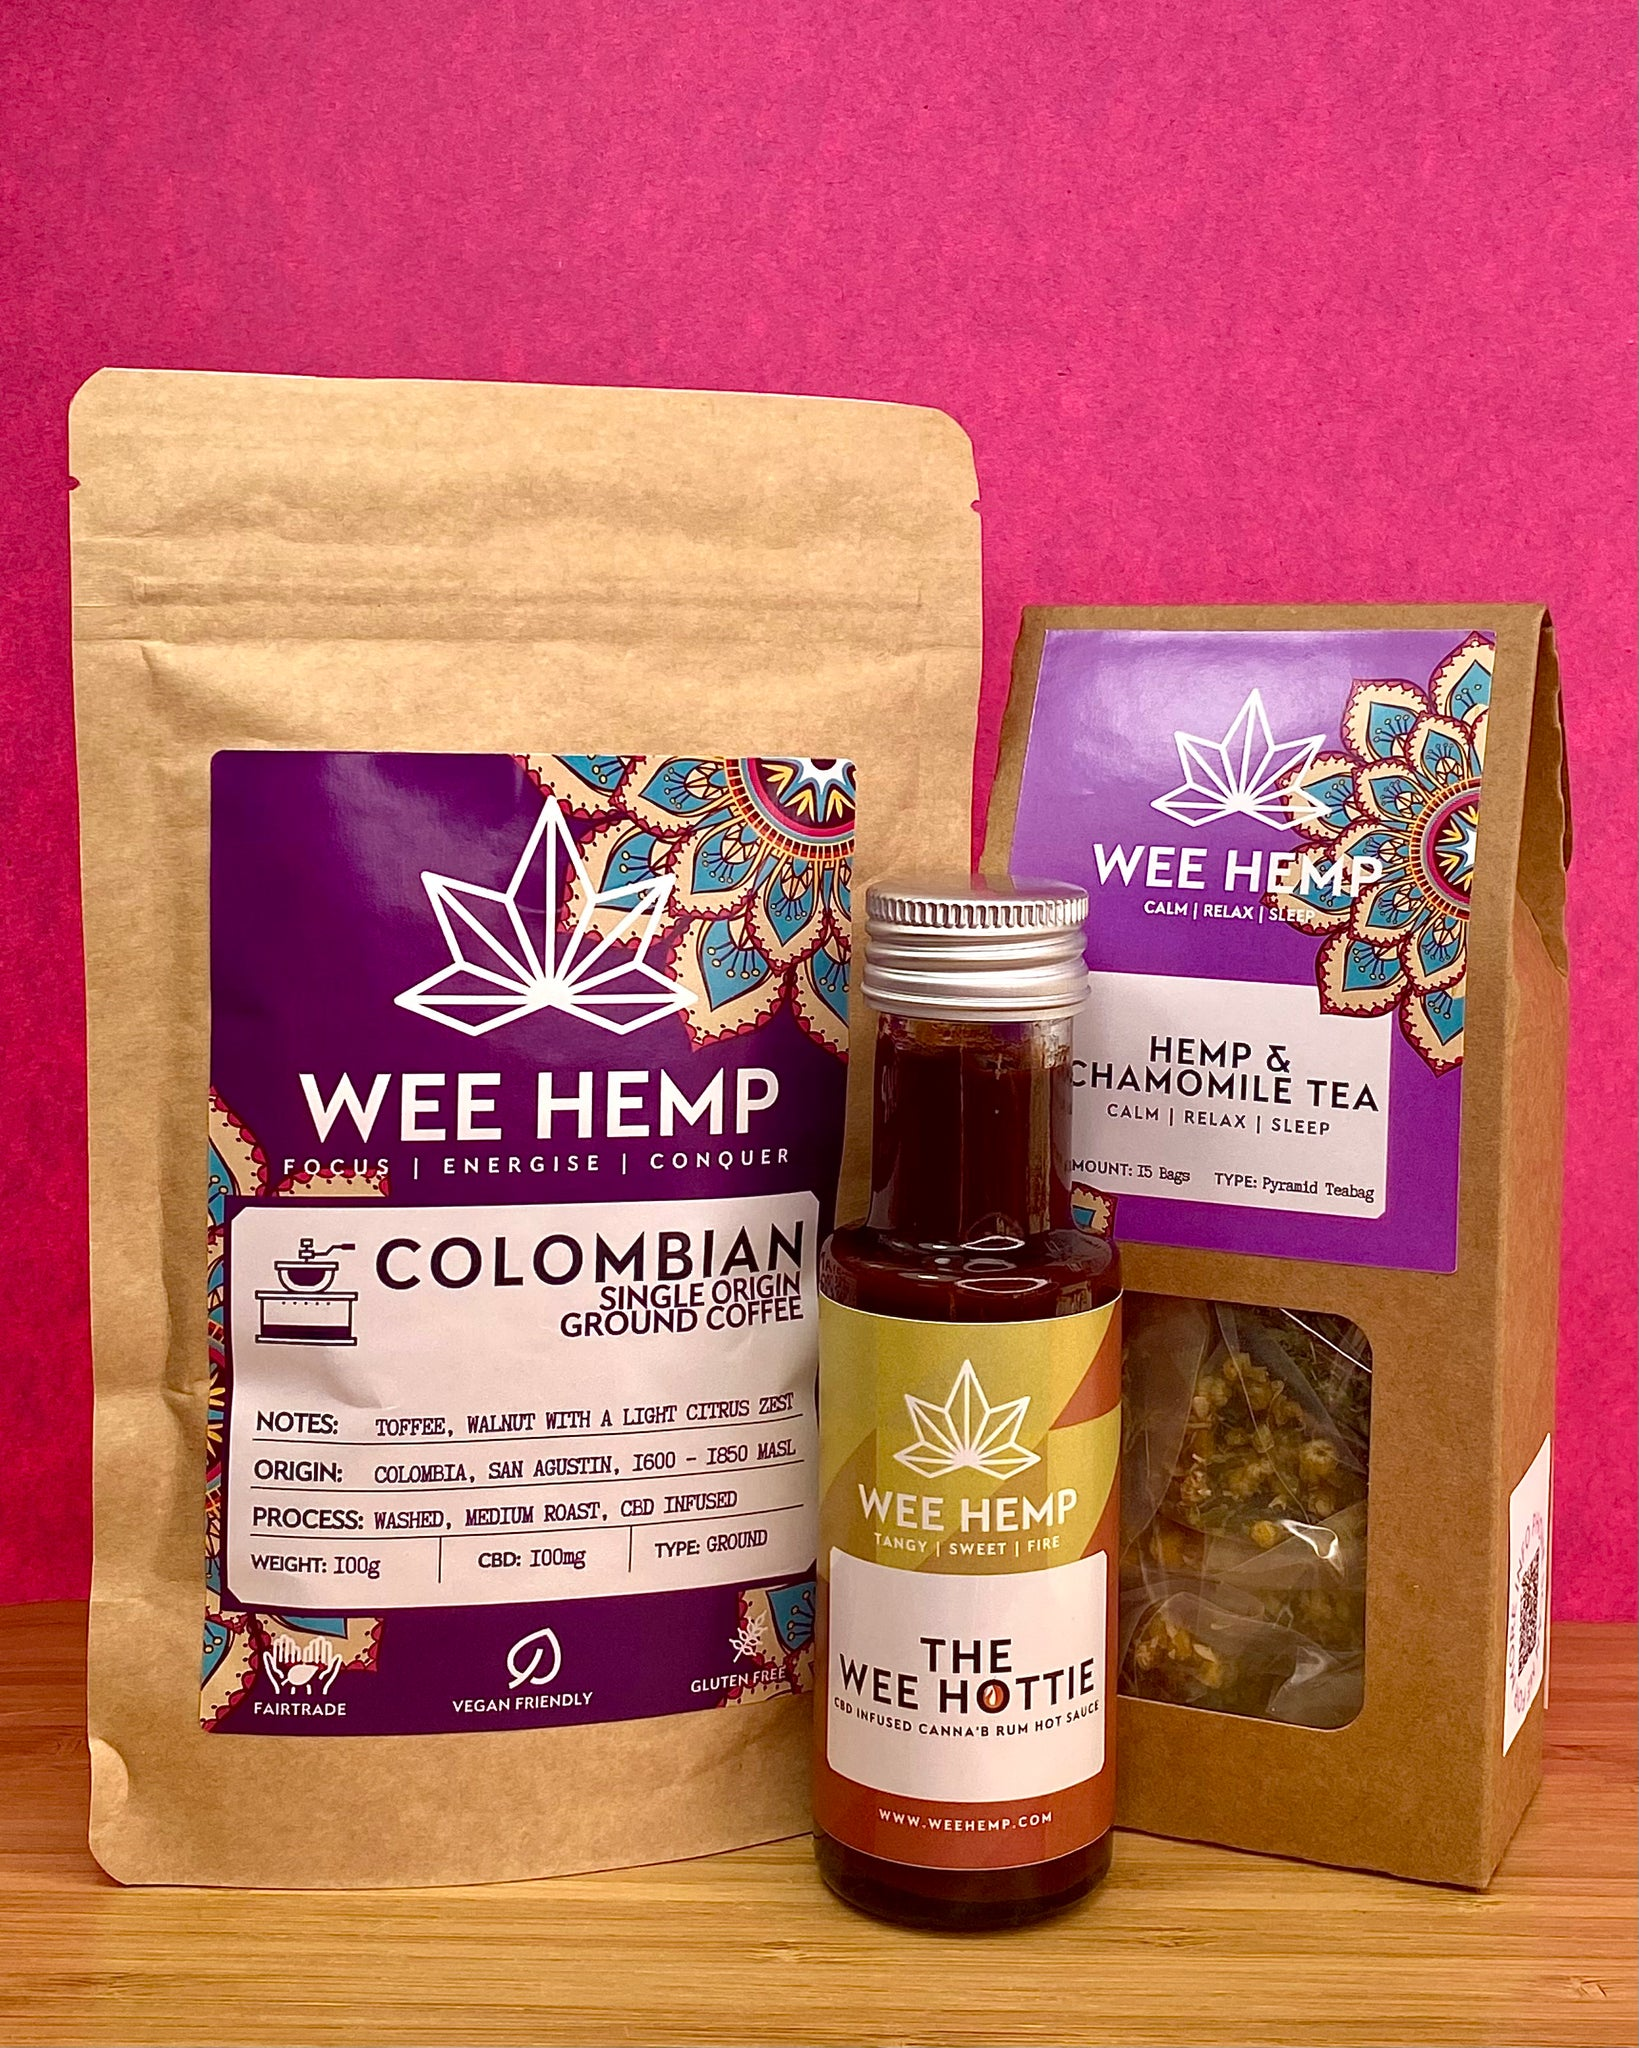 The Wee Christmas Box Set From Wee Hemp - The Wee Hottie - CBD Infused Canna'B Rum Hot Sauce, Ground), Wee Hemp Tea (Your choice of Hemp & Chamomile Tea or Hemp, Green Sencha & Jasmine Tea)